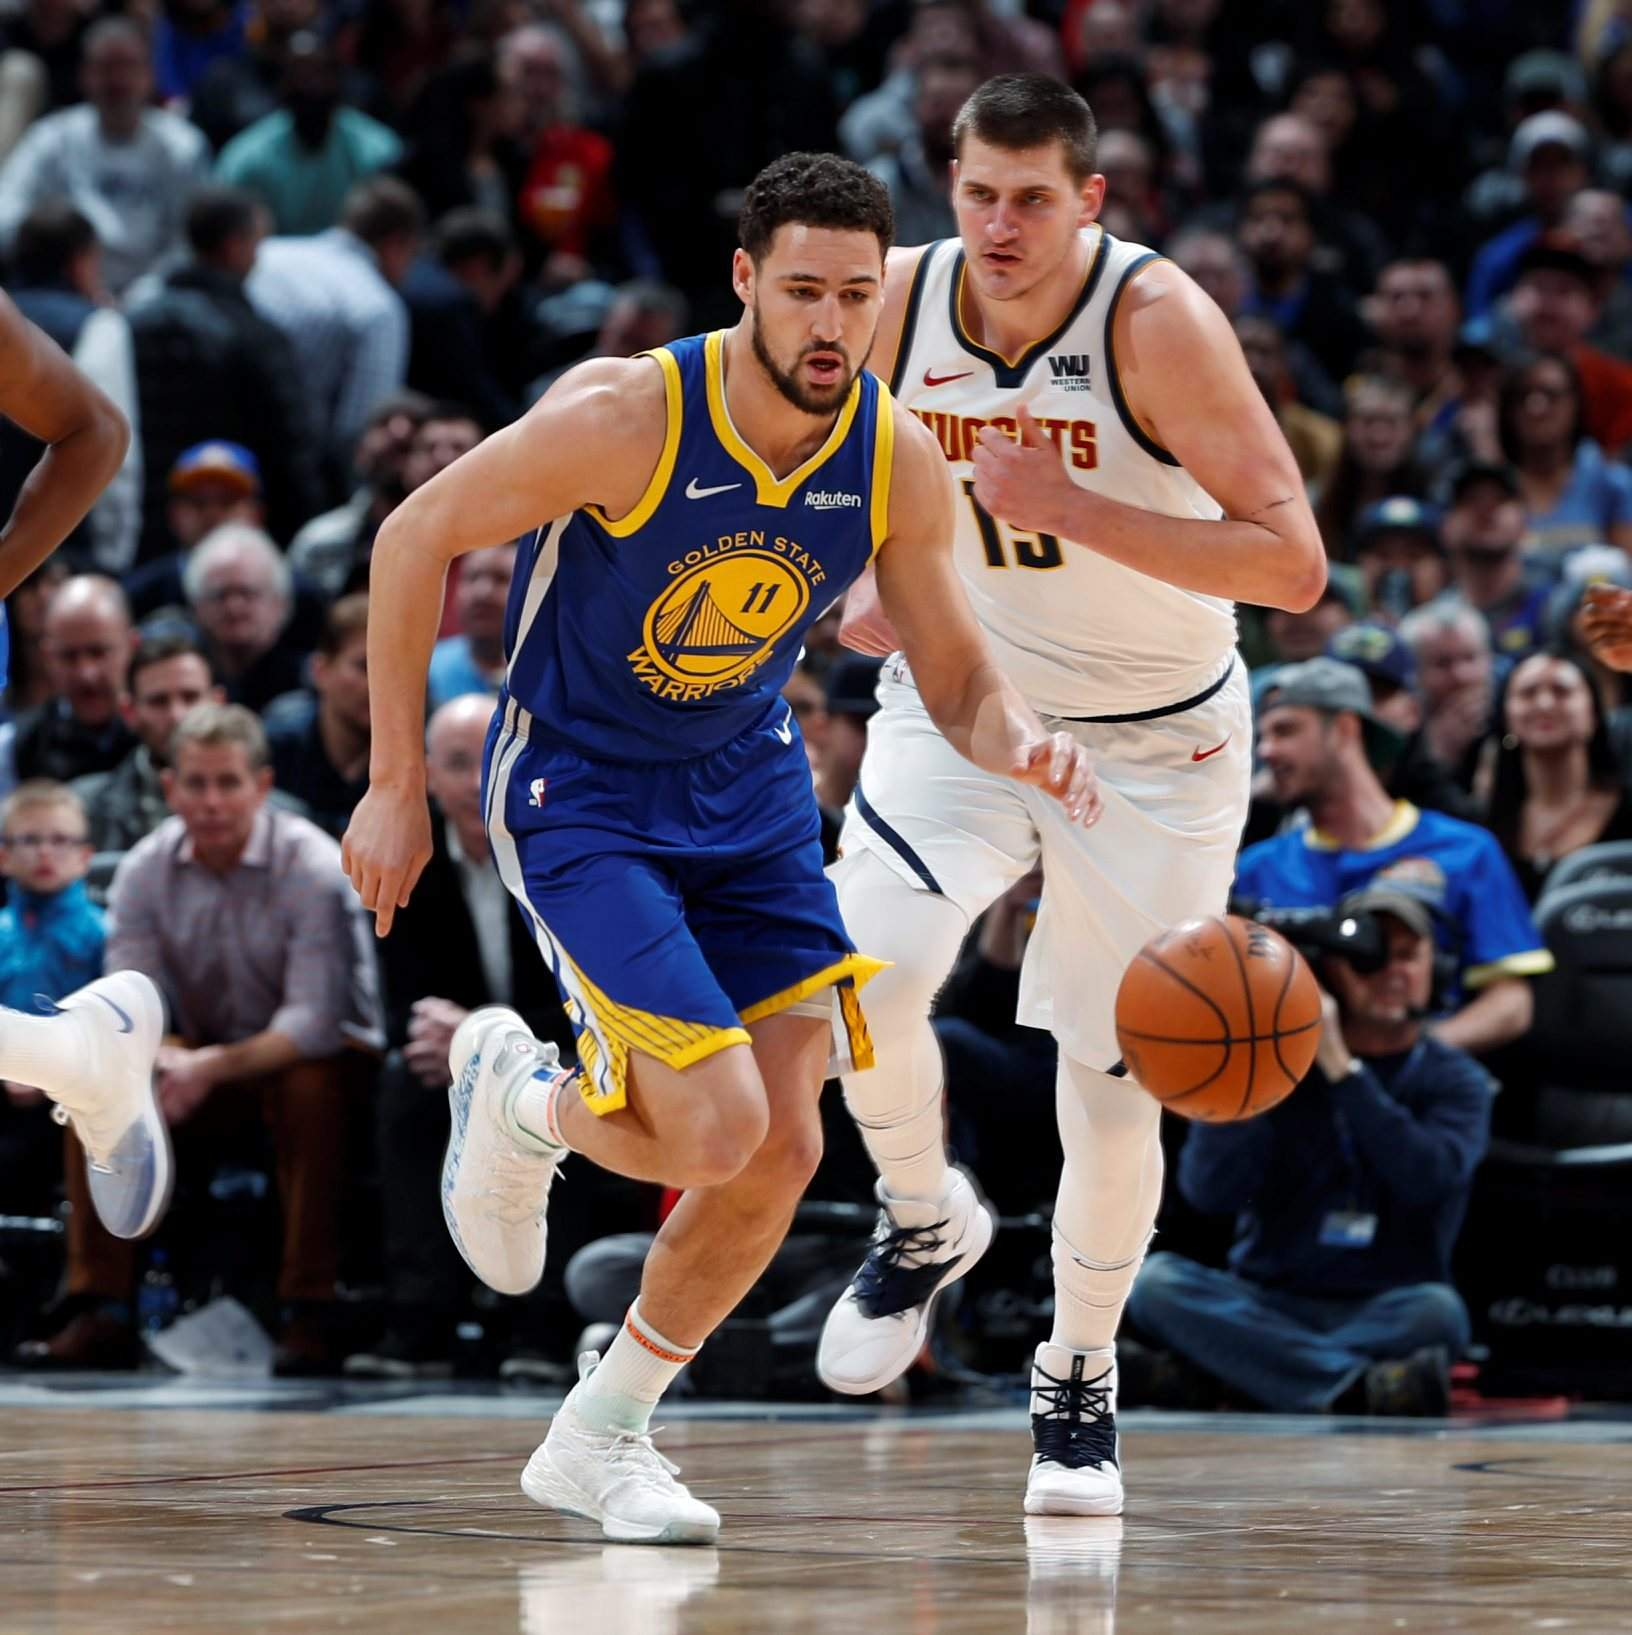 ad03bff99576 Golden State Warriors guard Klay Thompson tracks down a loose ball as  Denver Nuggets center Nikola Jokic follows in the first half Tuesday in  Denver.